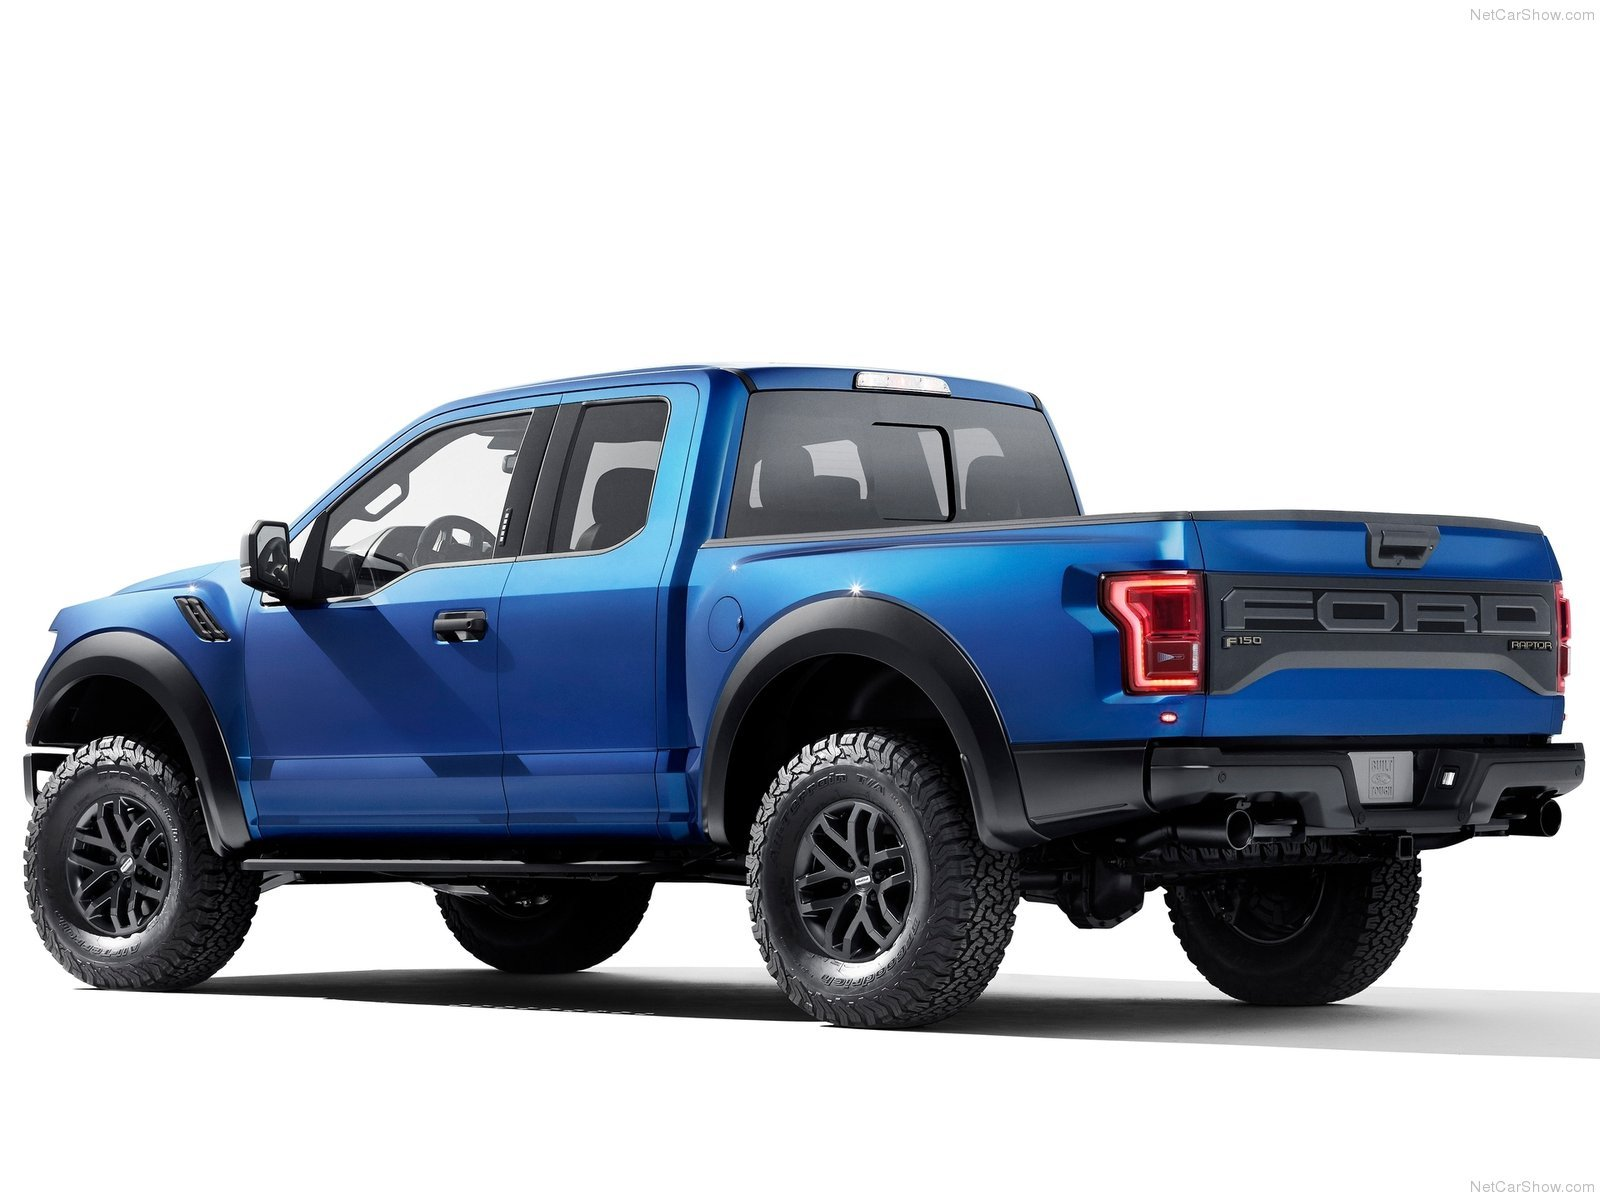 Ford F 150 Raptor 2017 truck pickup cars wallpaper background 1600x1200